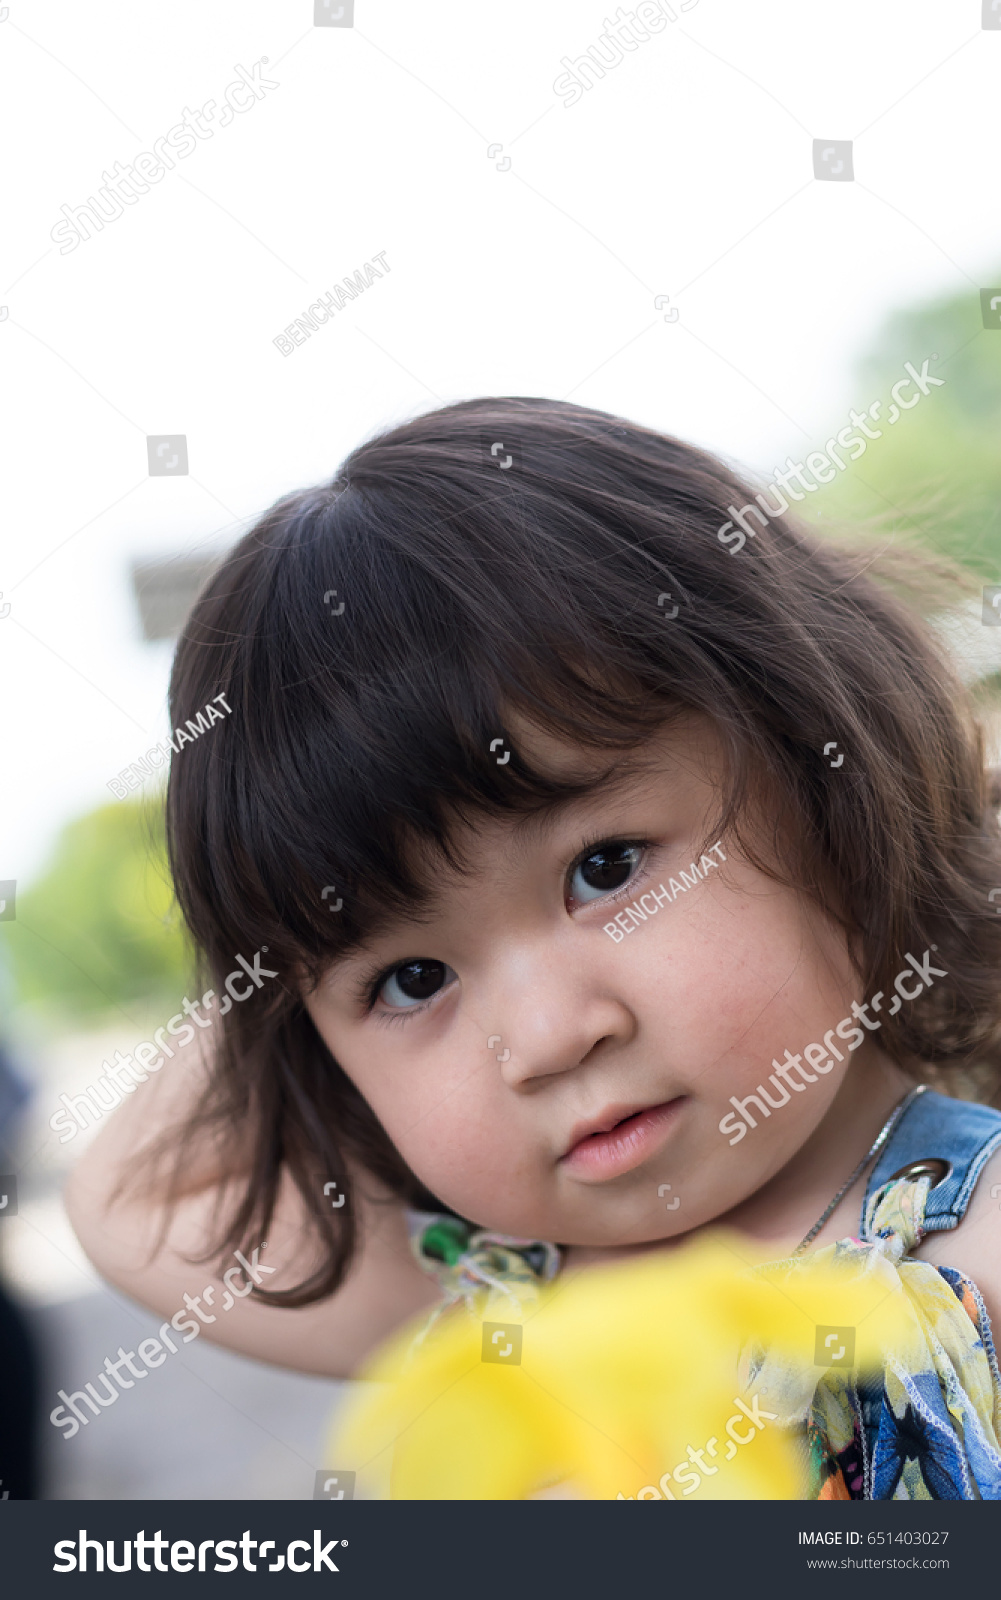 why are asian girls so cute